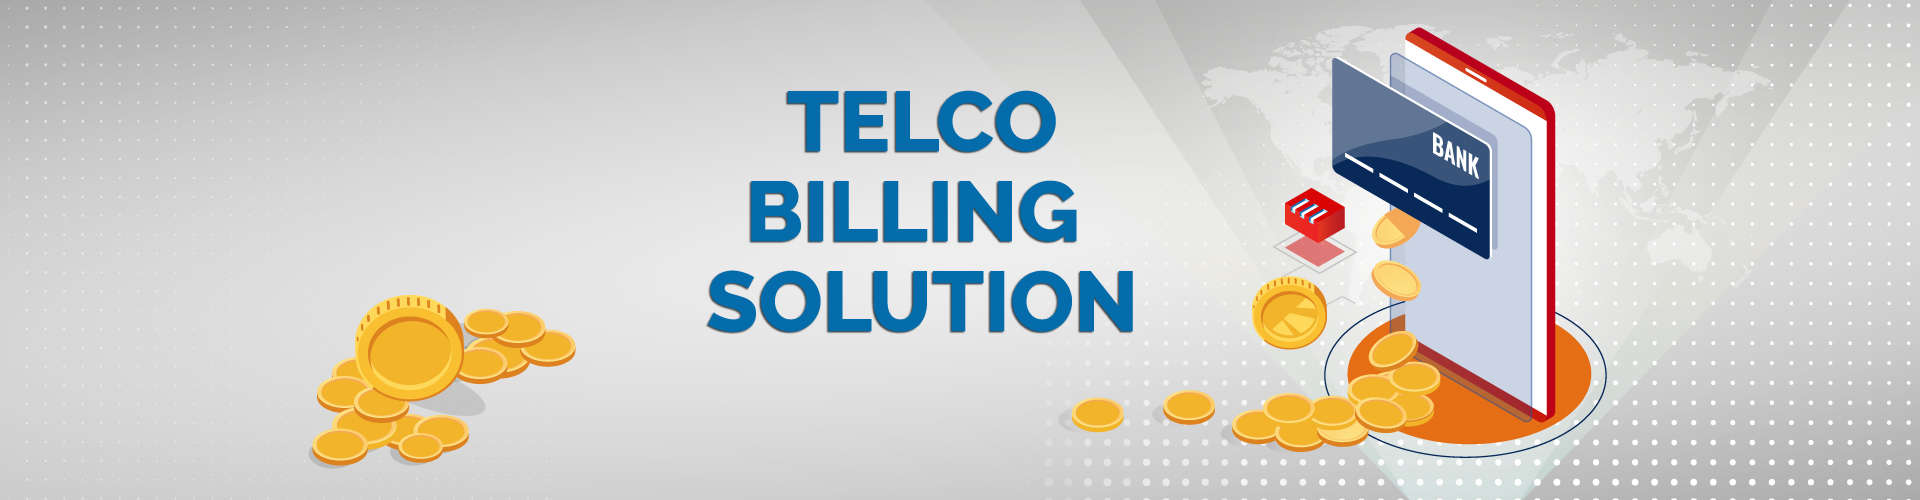 Telco Billing Solution, Telco Billing Solution